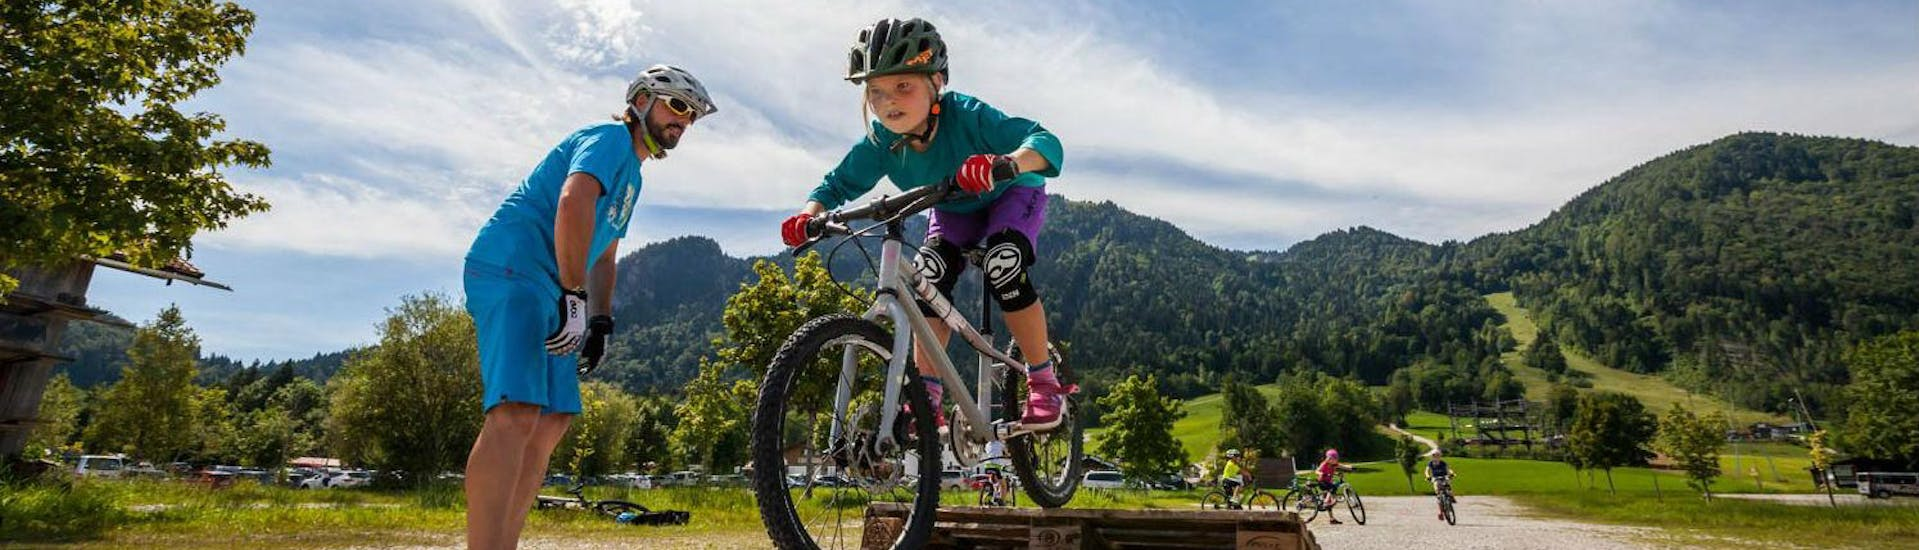 Mountain Bike Training for Kids - All Levels - Lenggries